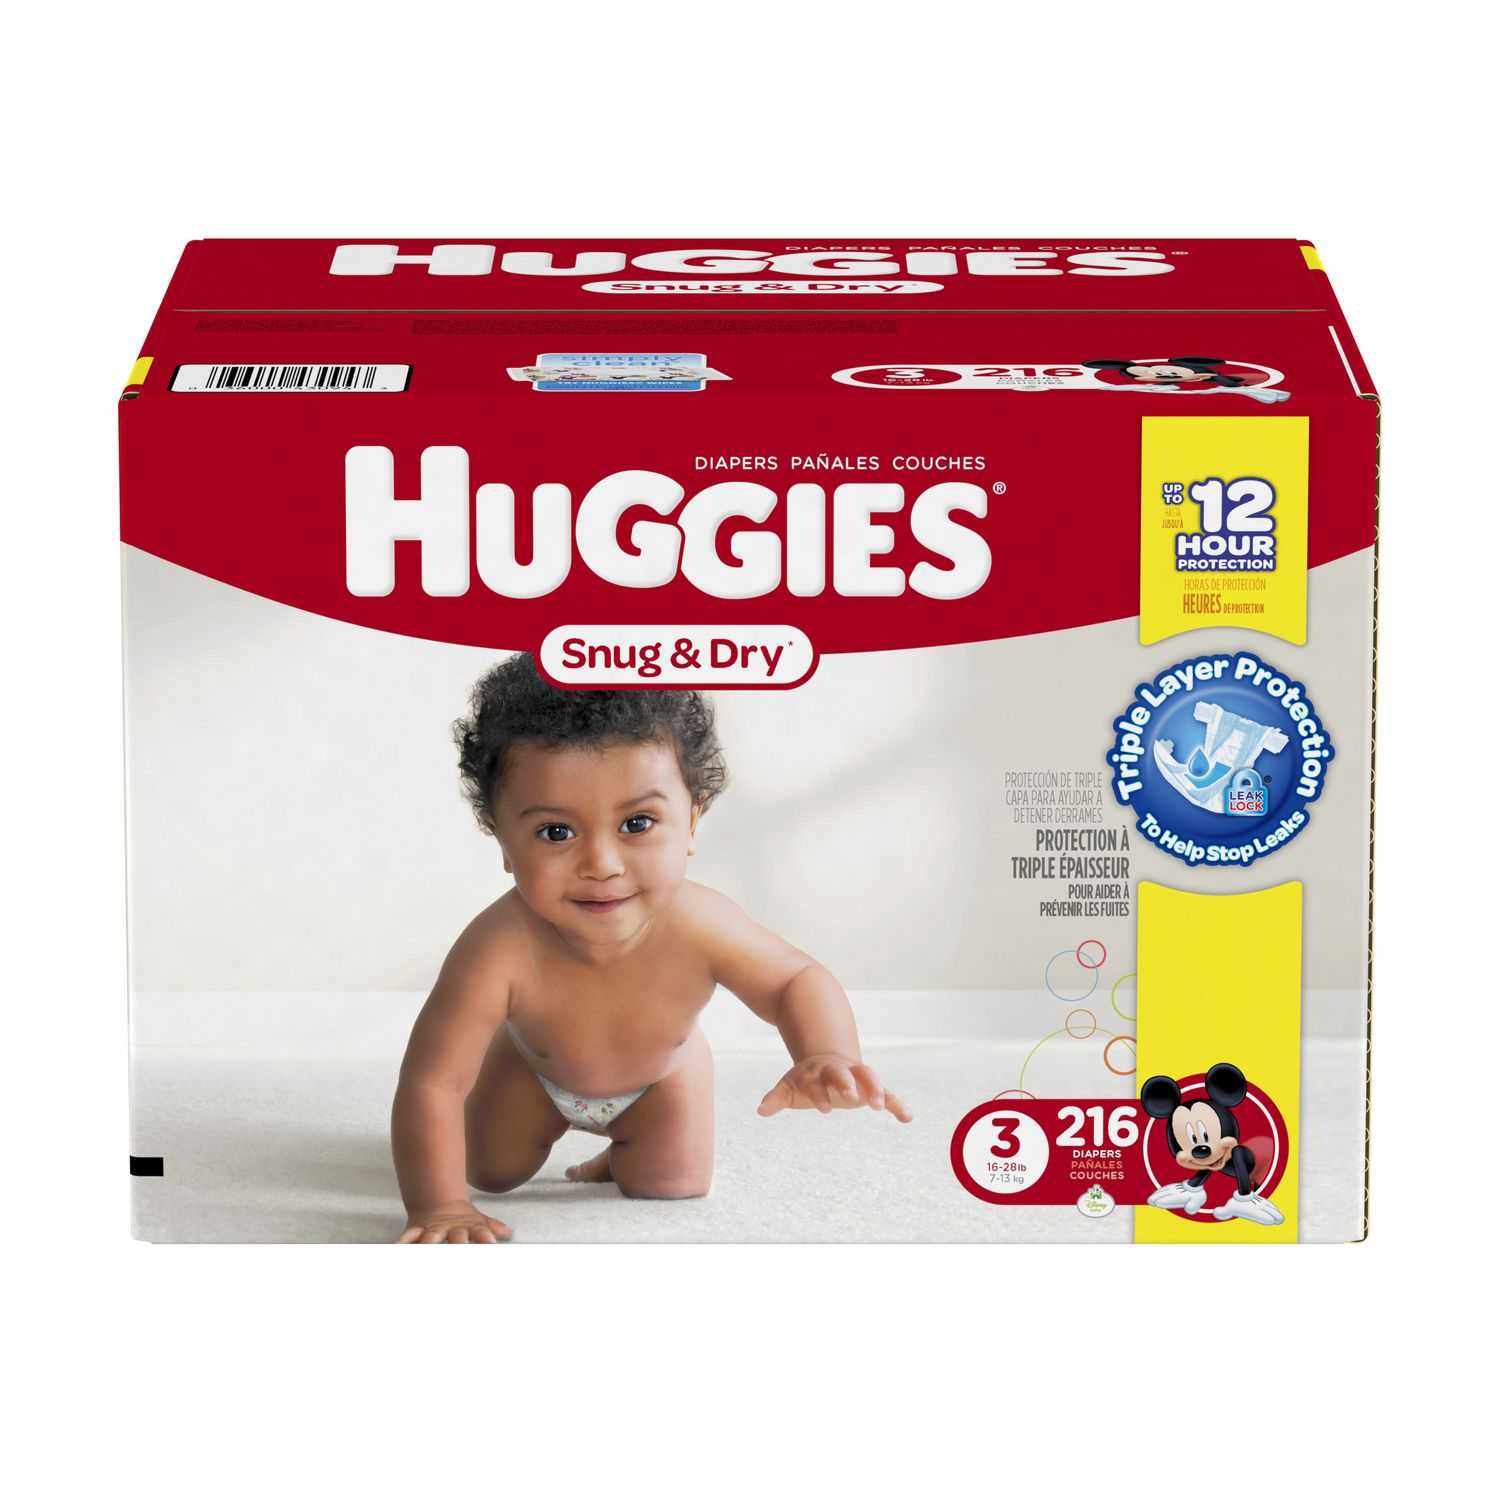 Huggies Snug & Dry Diapers Economy Plus | Walmart.ca